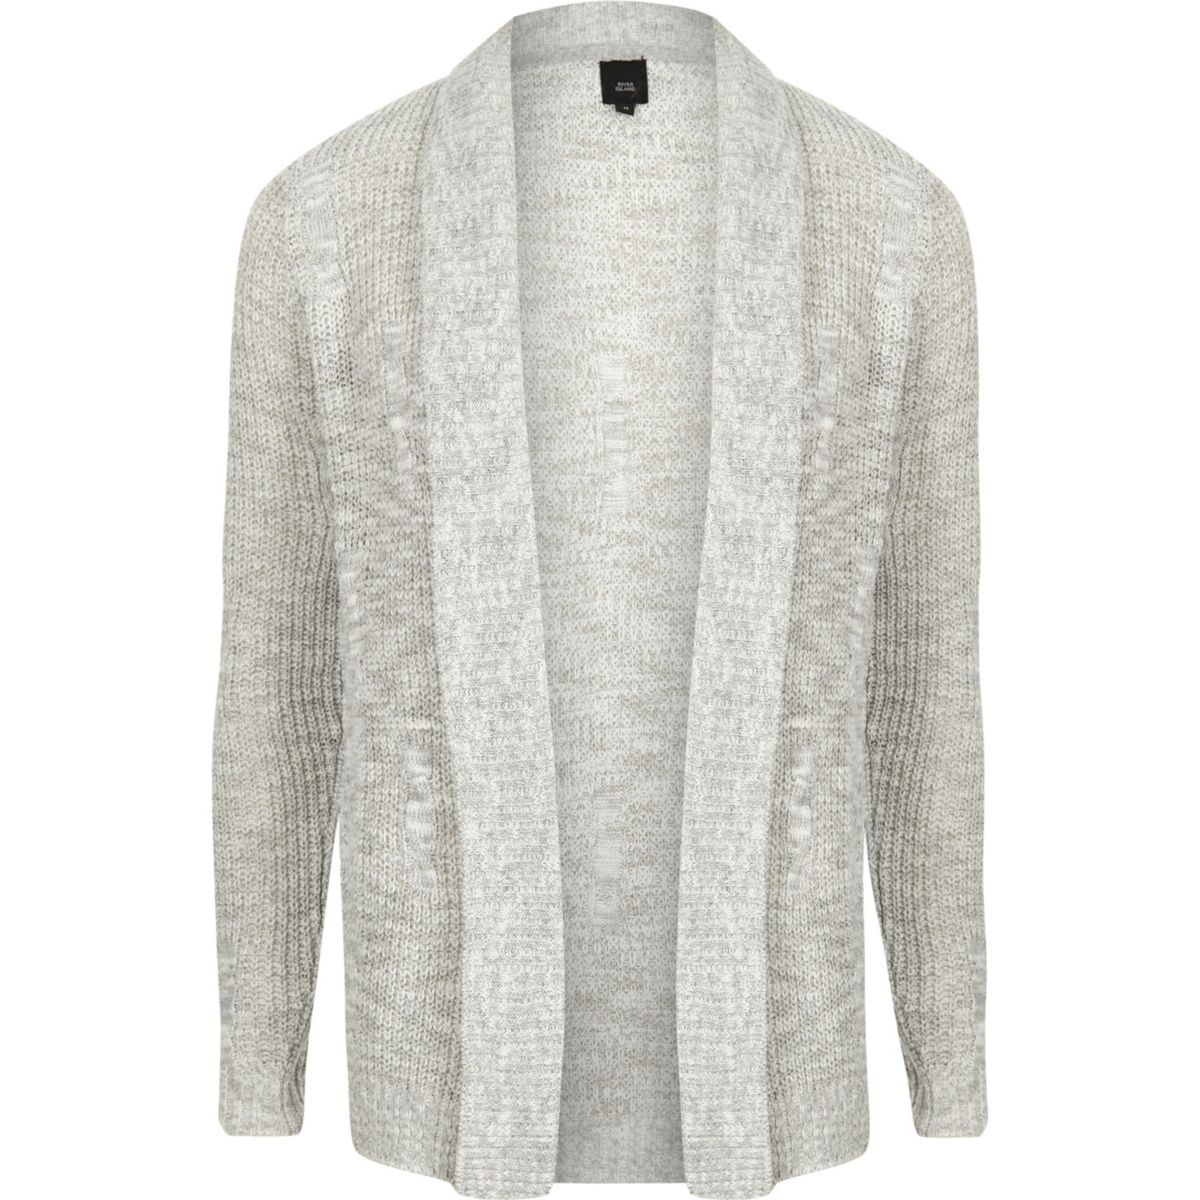 Big and Tall grey knit cardigan - Cardigans - Jumpers & Cardigans ...